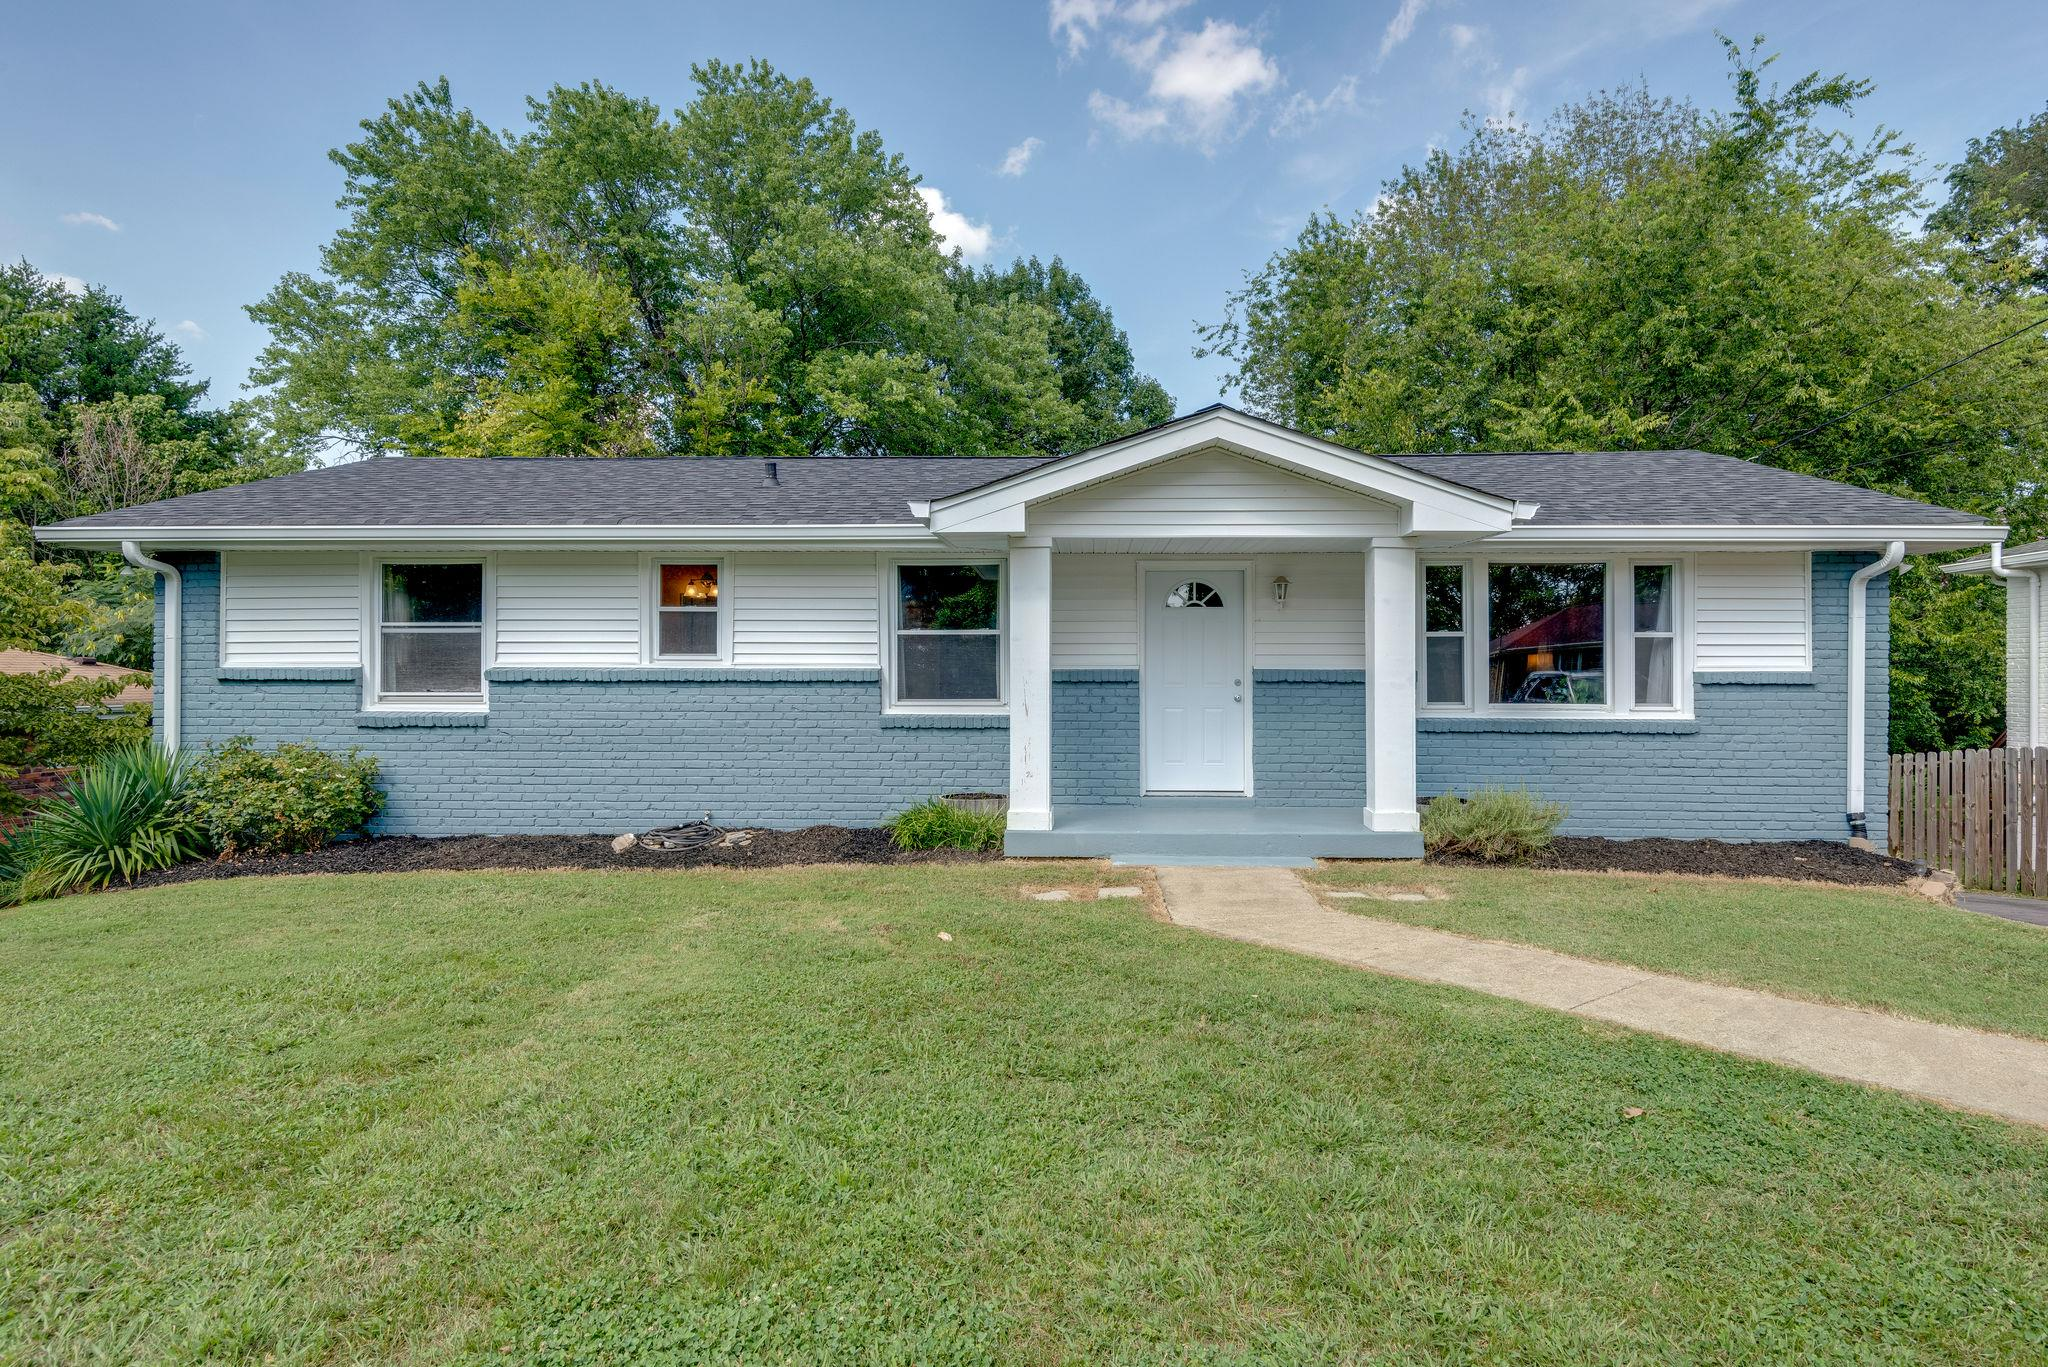 540 Brewer Dr, Nashville, TN 37211 - Nashville, TN real estate listing